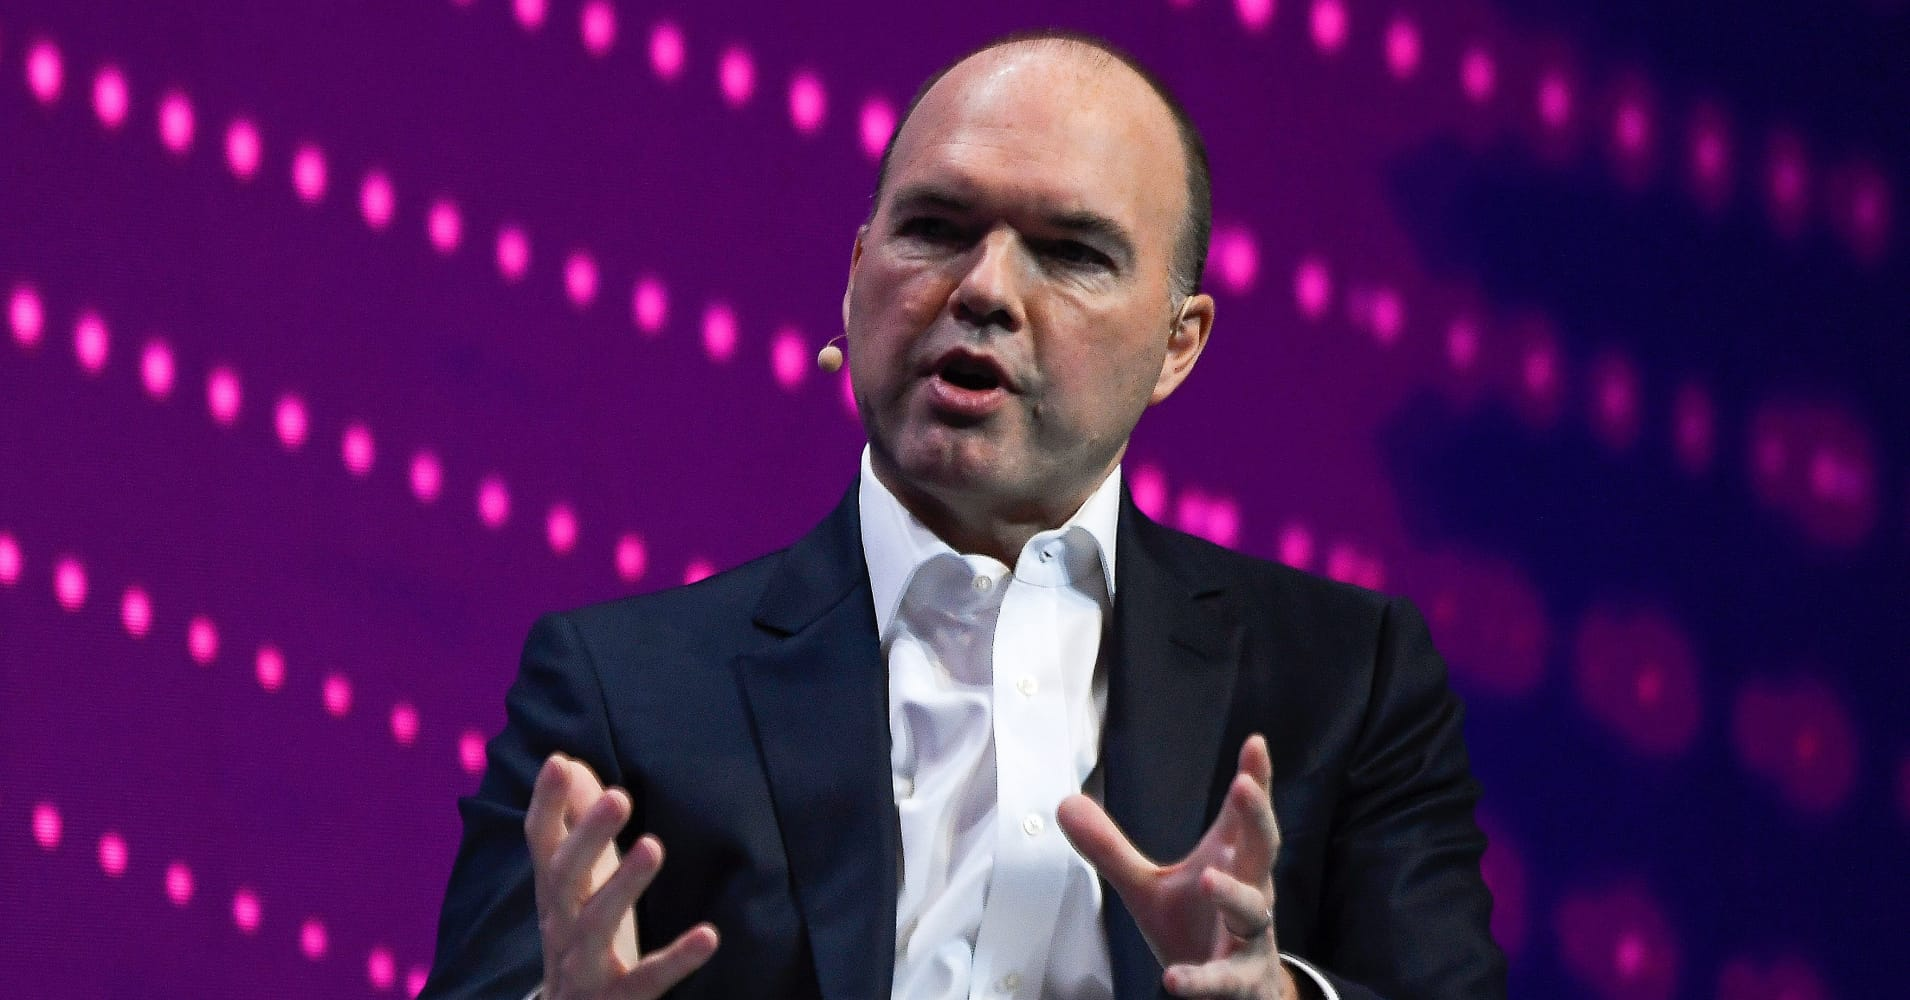 Vodafone CEO says banning Huawei could set Europe's 5G rollout back another two years